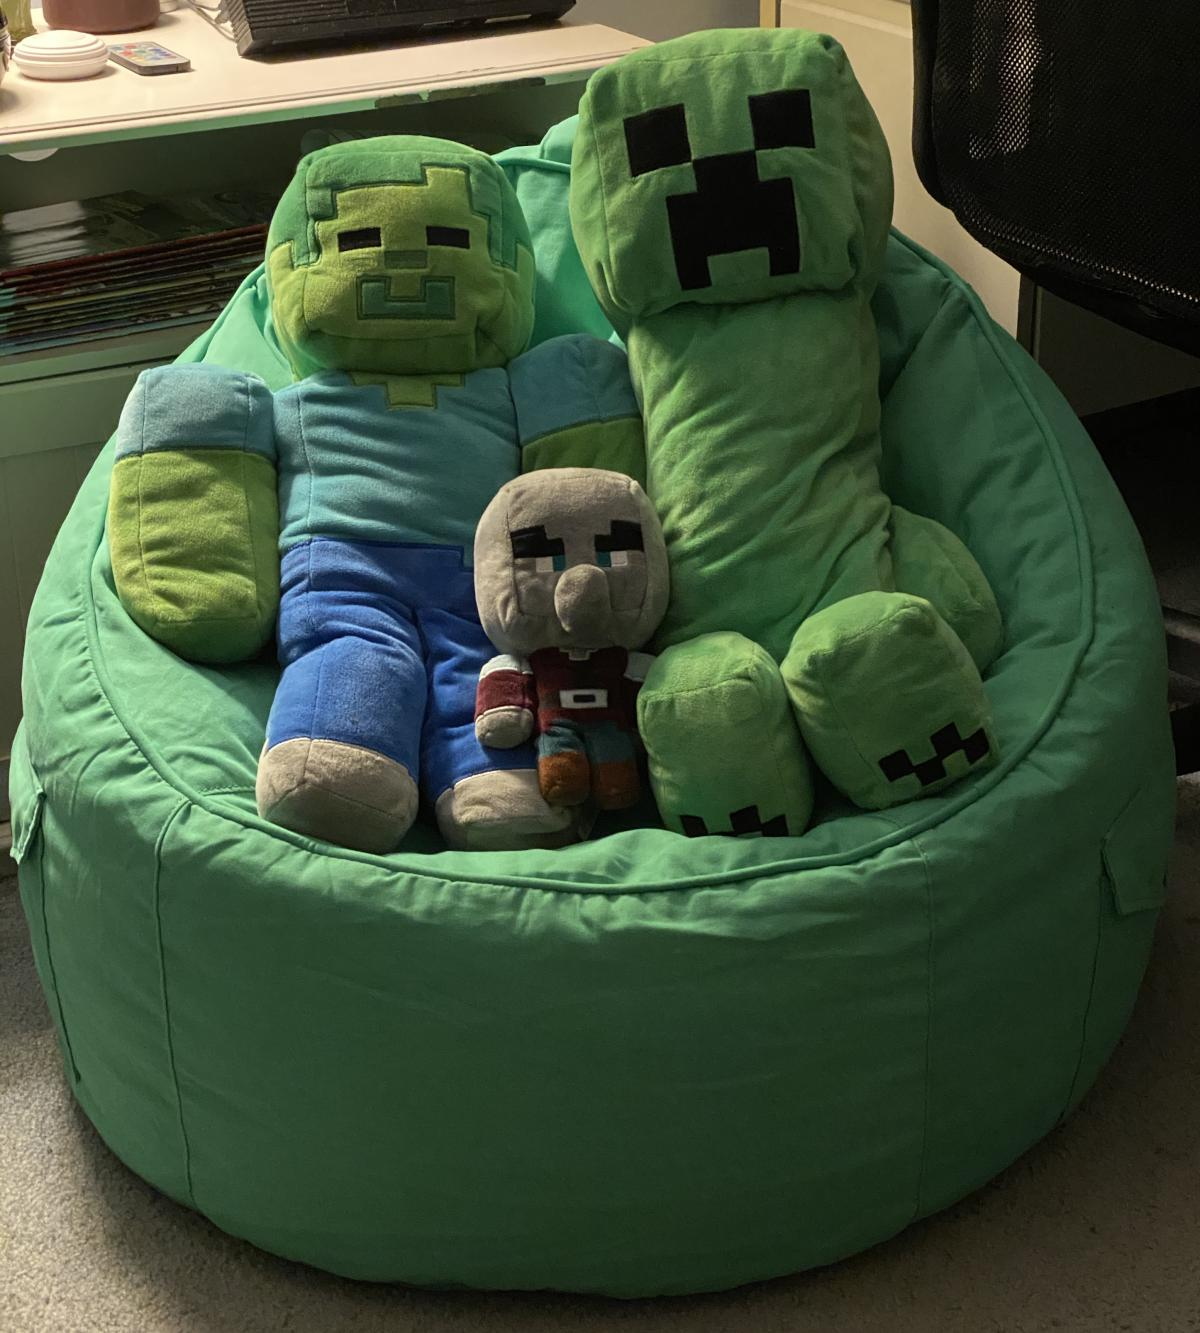 Zombie, pillager, creeper